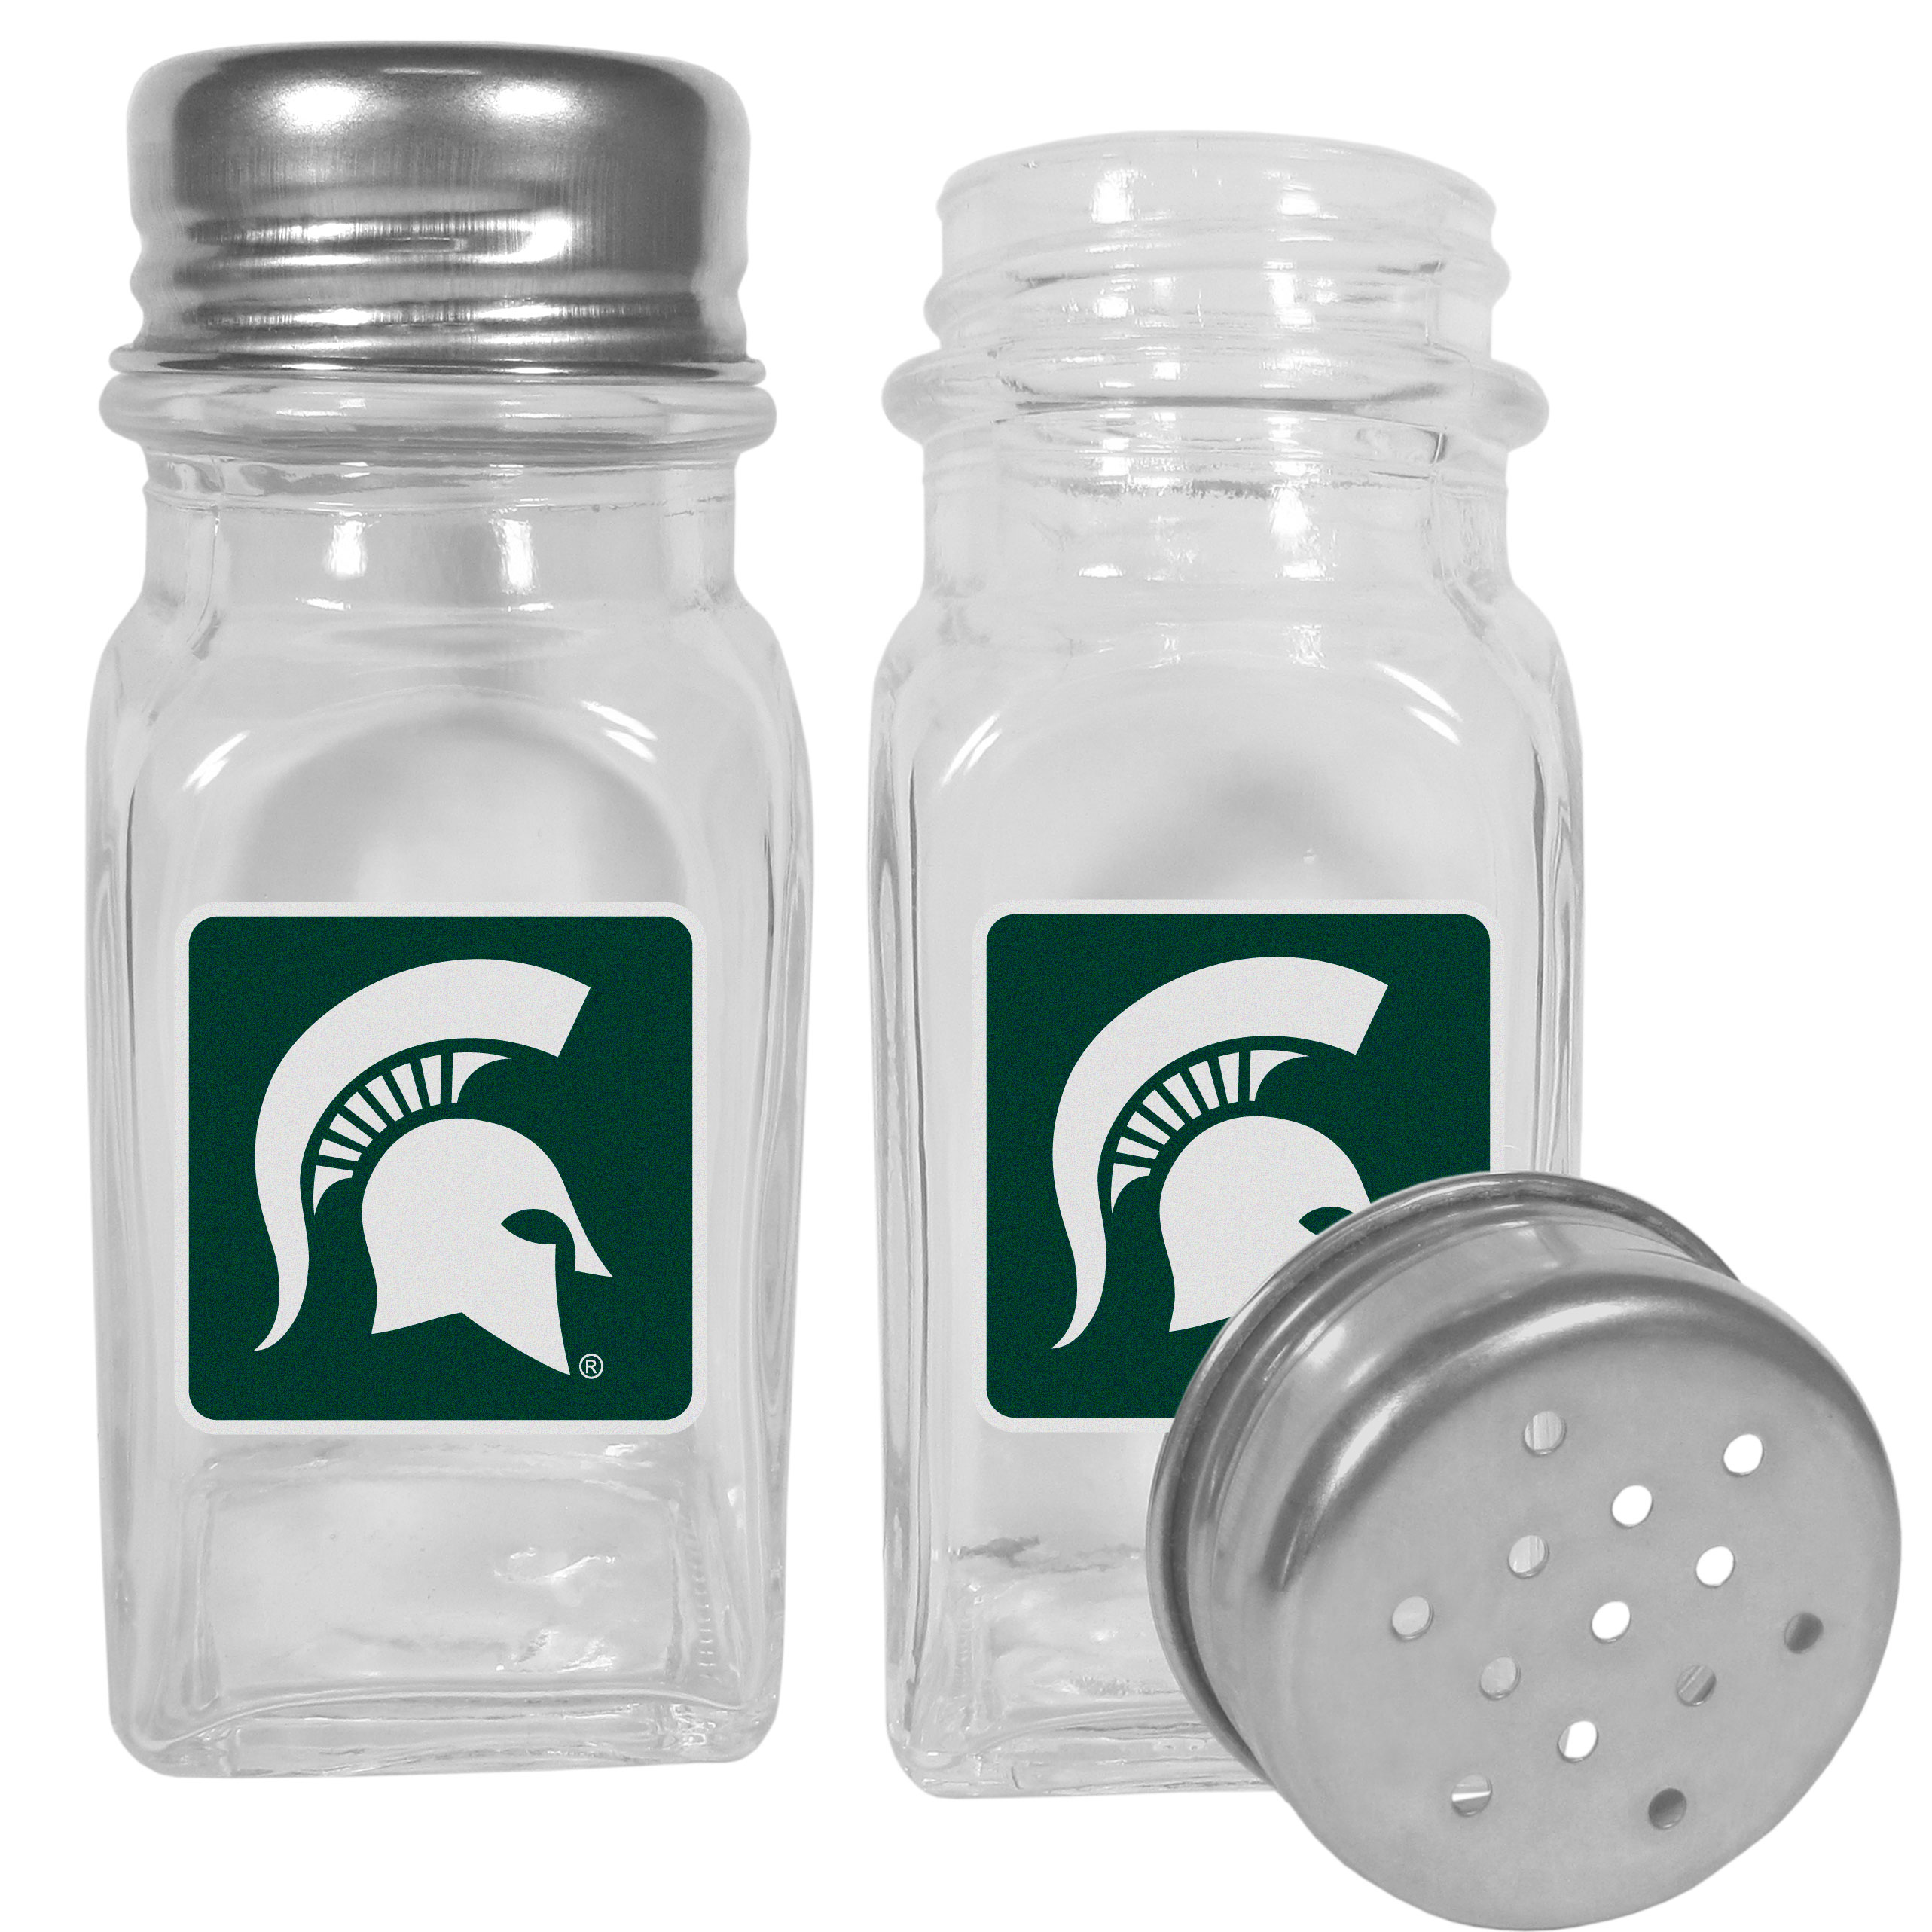 Michigan St. Spartans Graphics Salt and Pepper Shaker - No tailgate party is complete without your Michigan St. Spartans salt & pepper shakers featuring bright team logos. The diner replica salt and pepper shakers are glass with screw top lids. These team shakers are a great grill accessory whether you are barbecuing on the patio, picnicing or having a game day party.